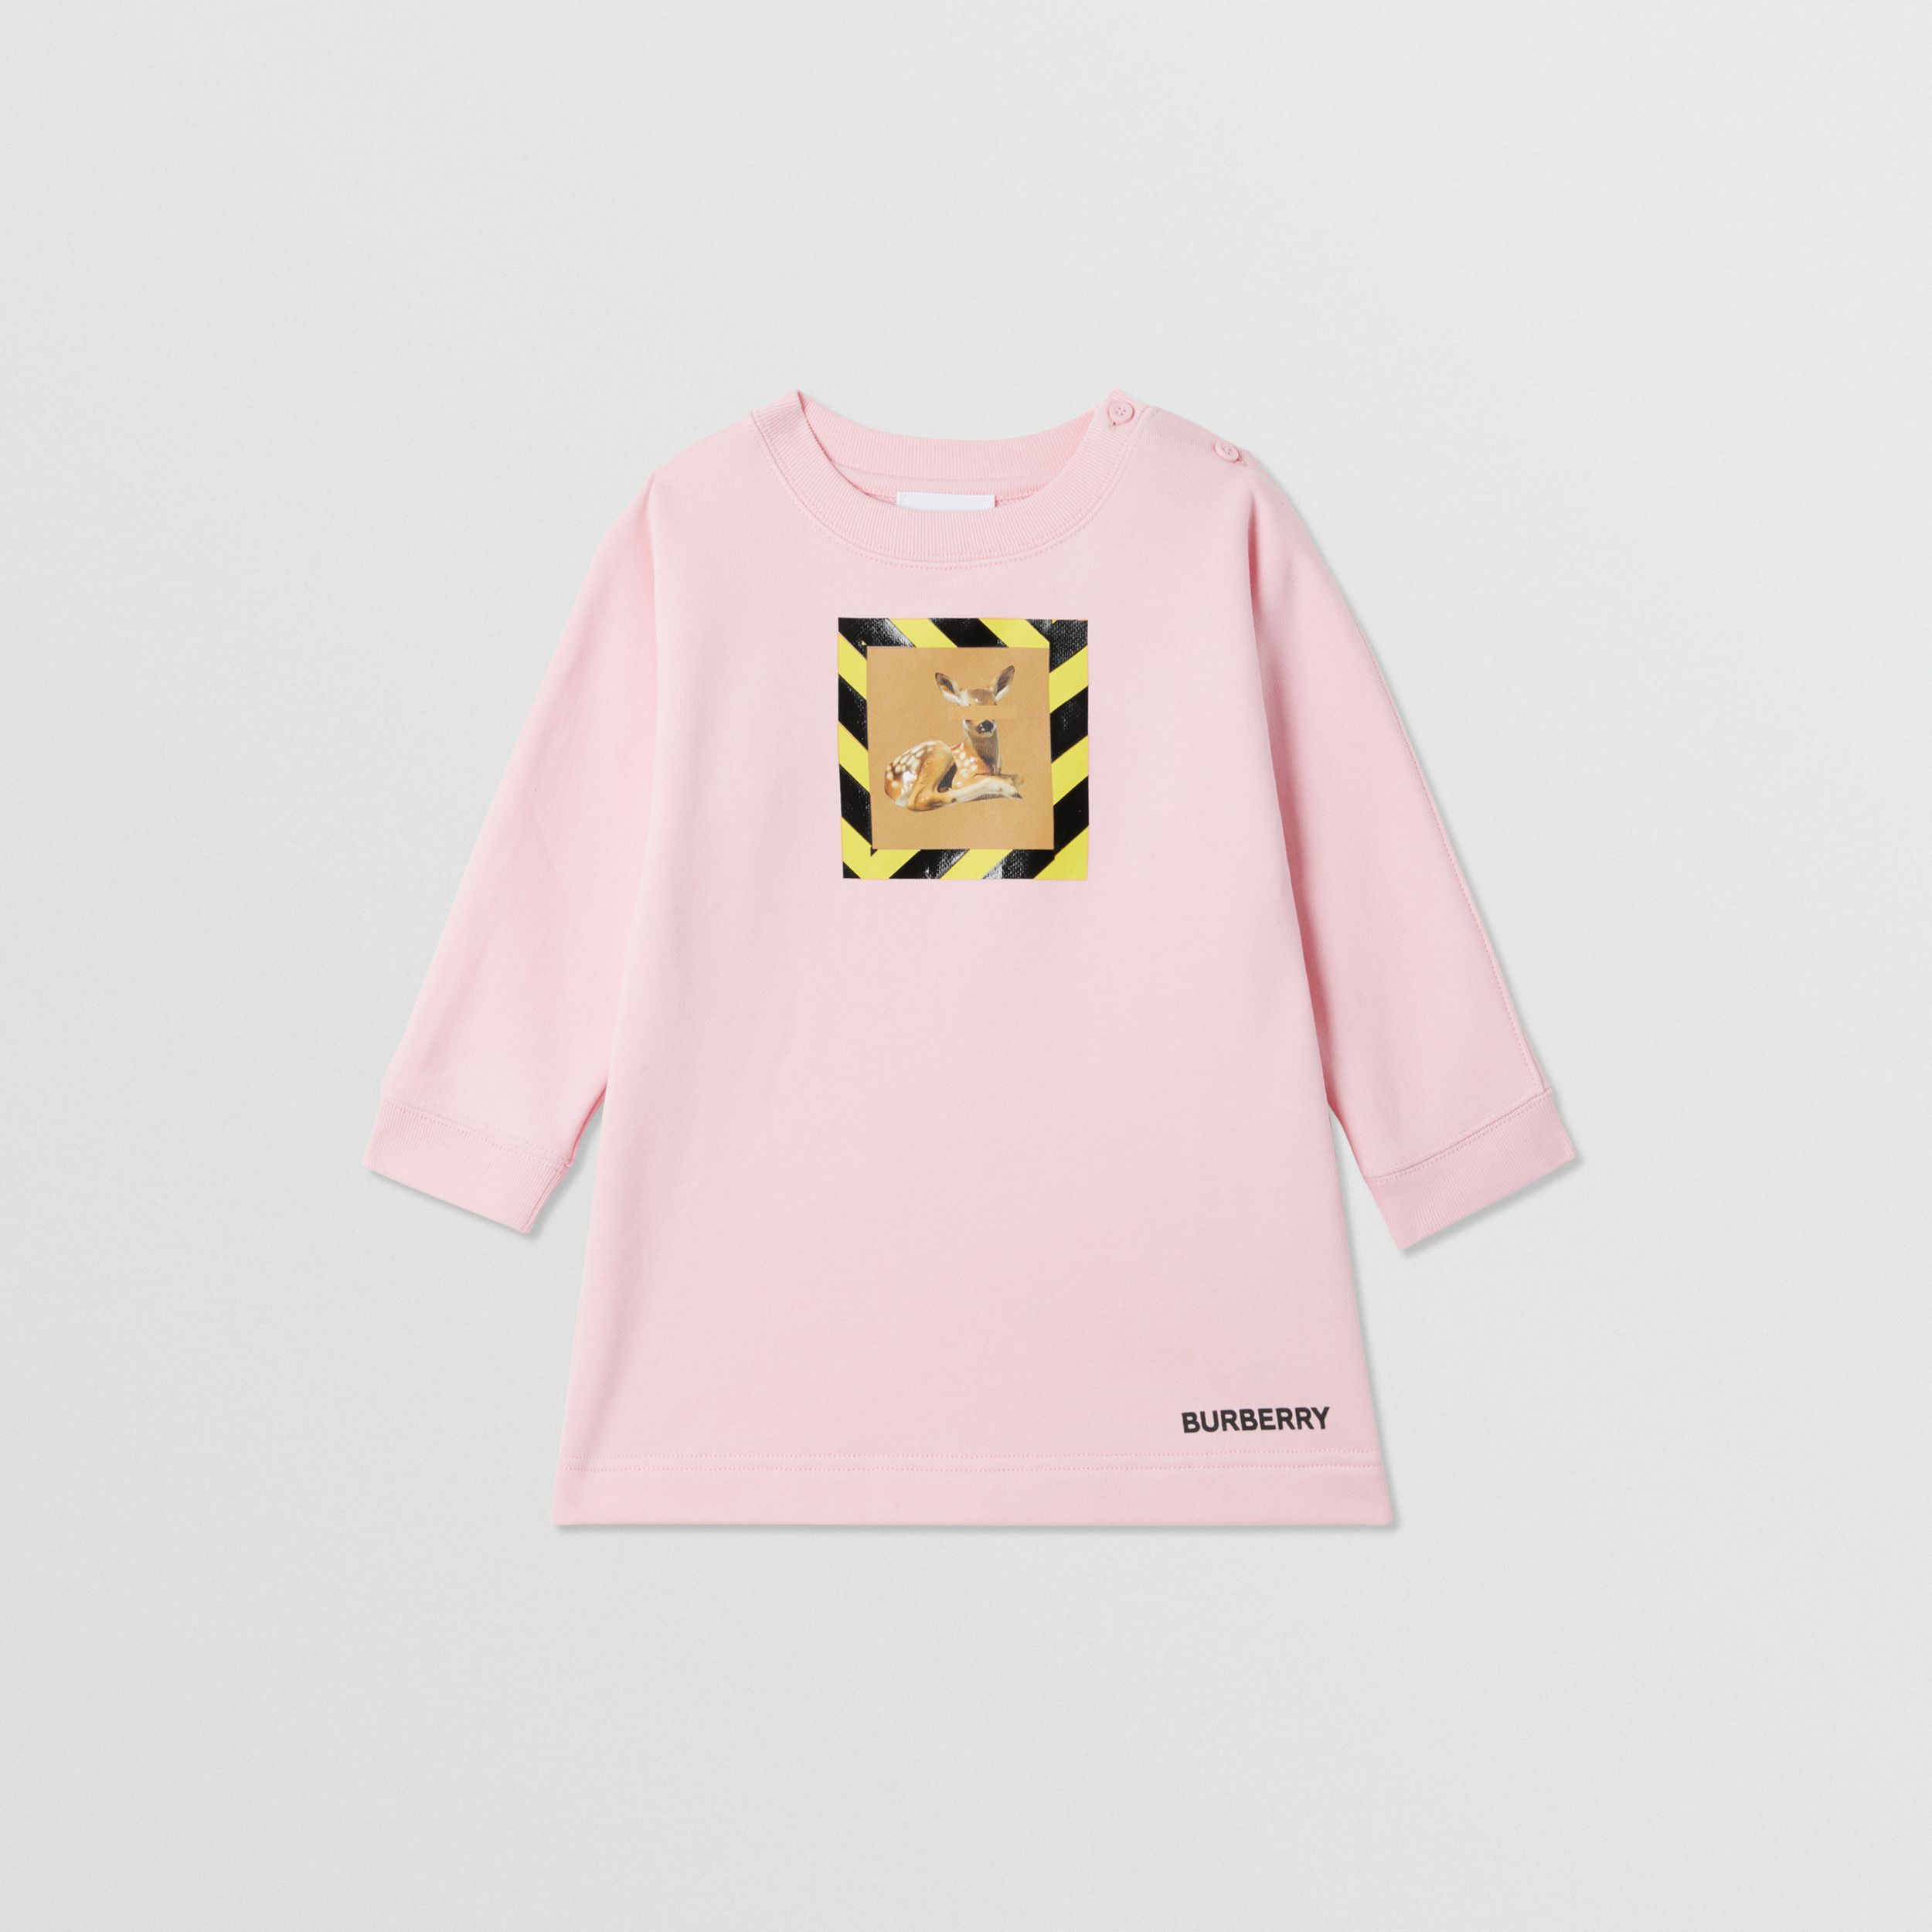 Deer Print Cotton Sweater Dress in Candy Pink - Children | Burberry - 1